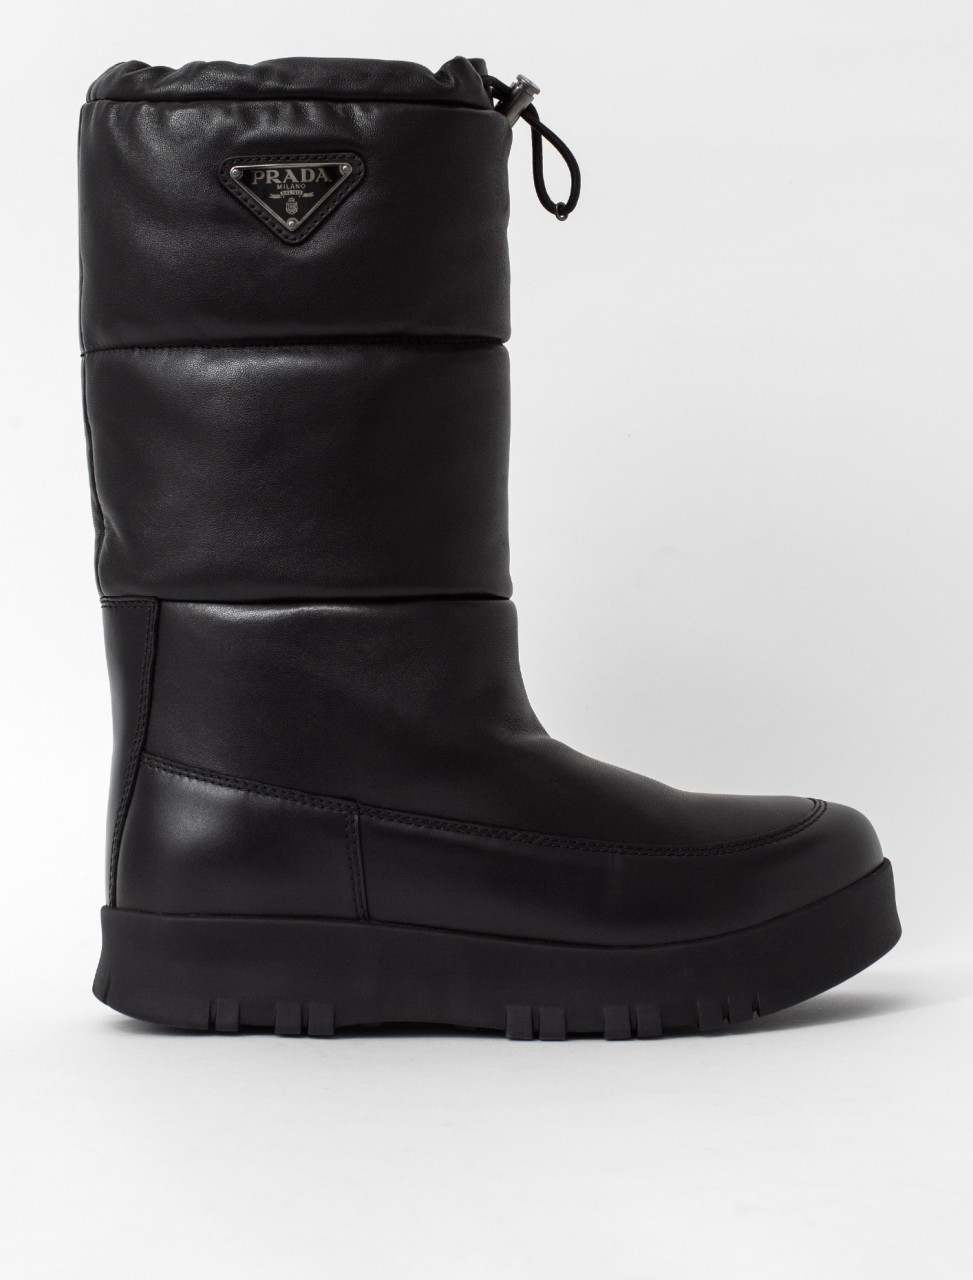 Shearling Lined Winter Boot